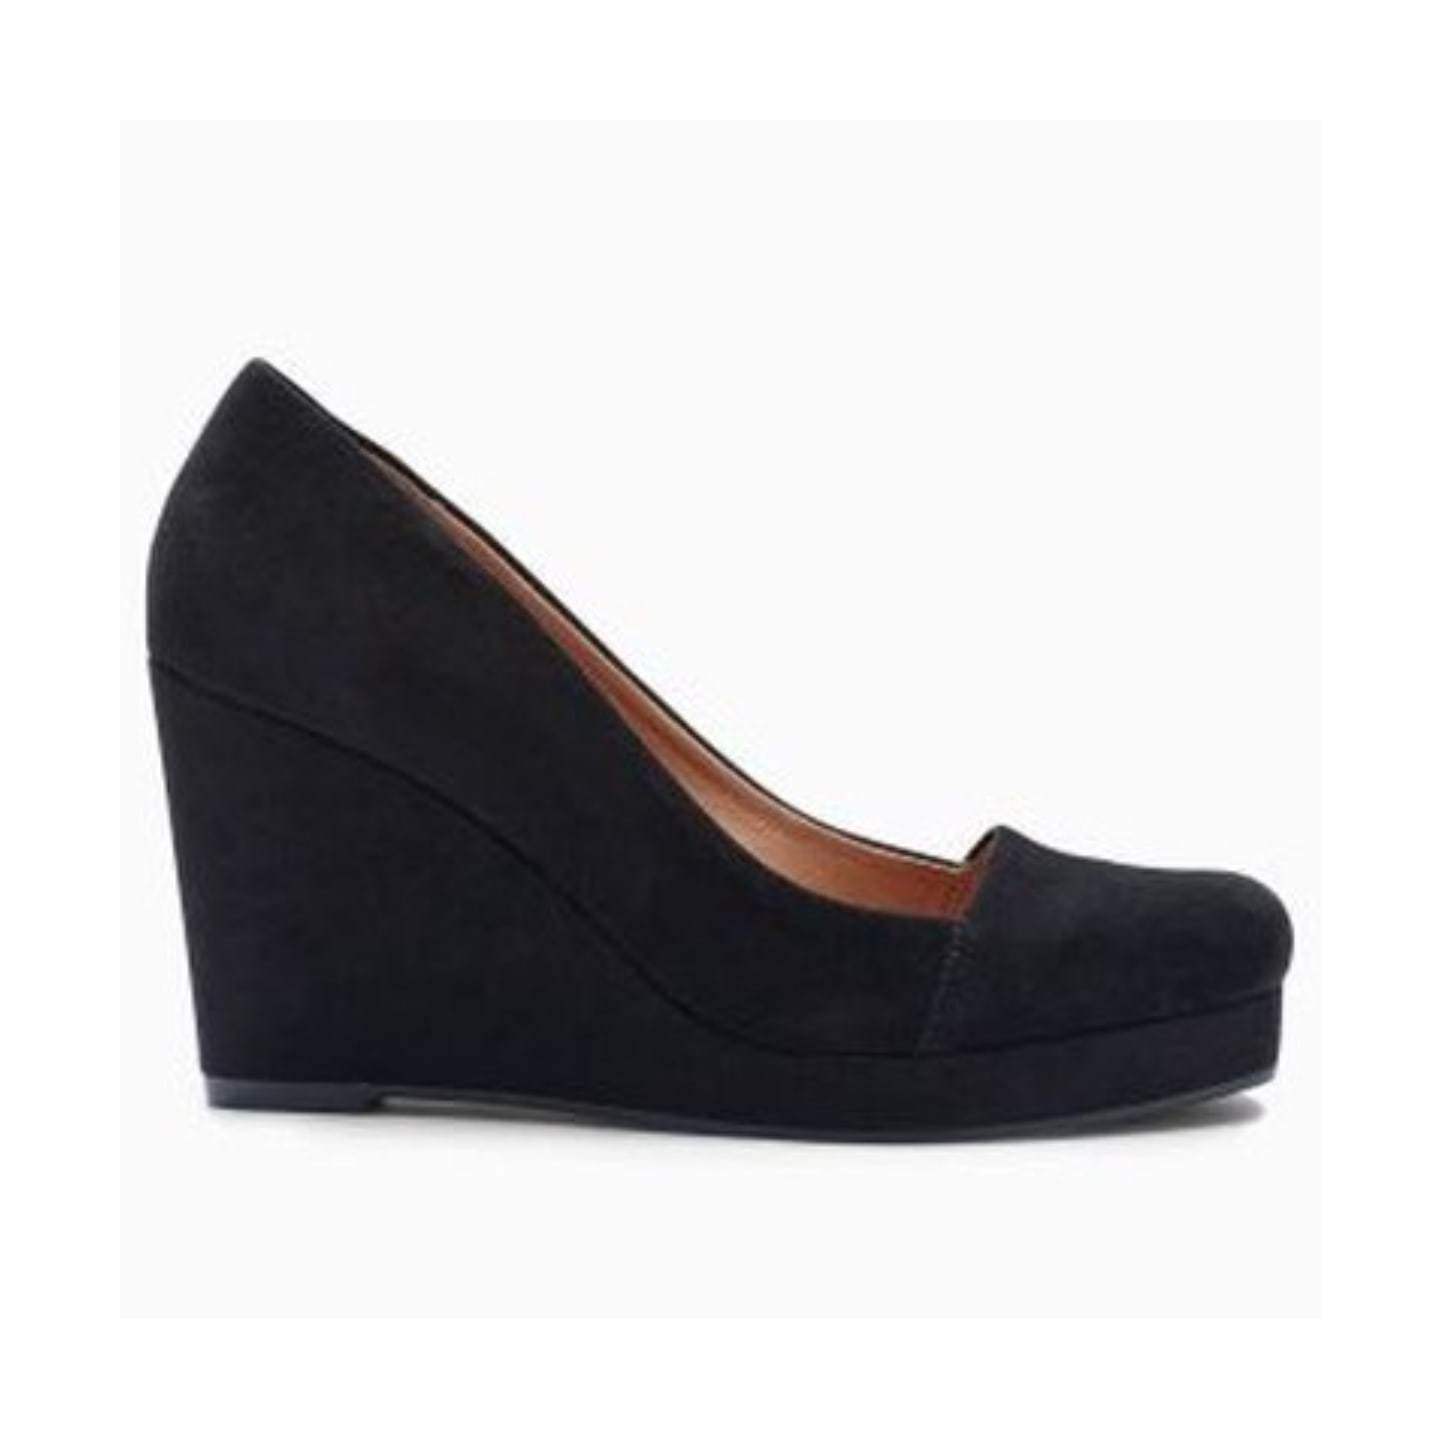 Next Square  Wedges - Black